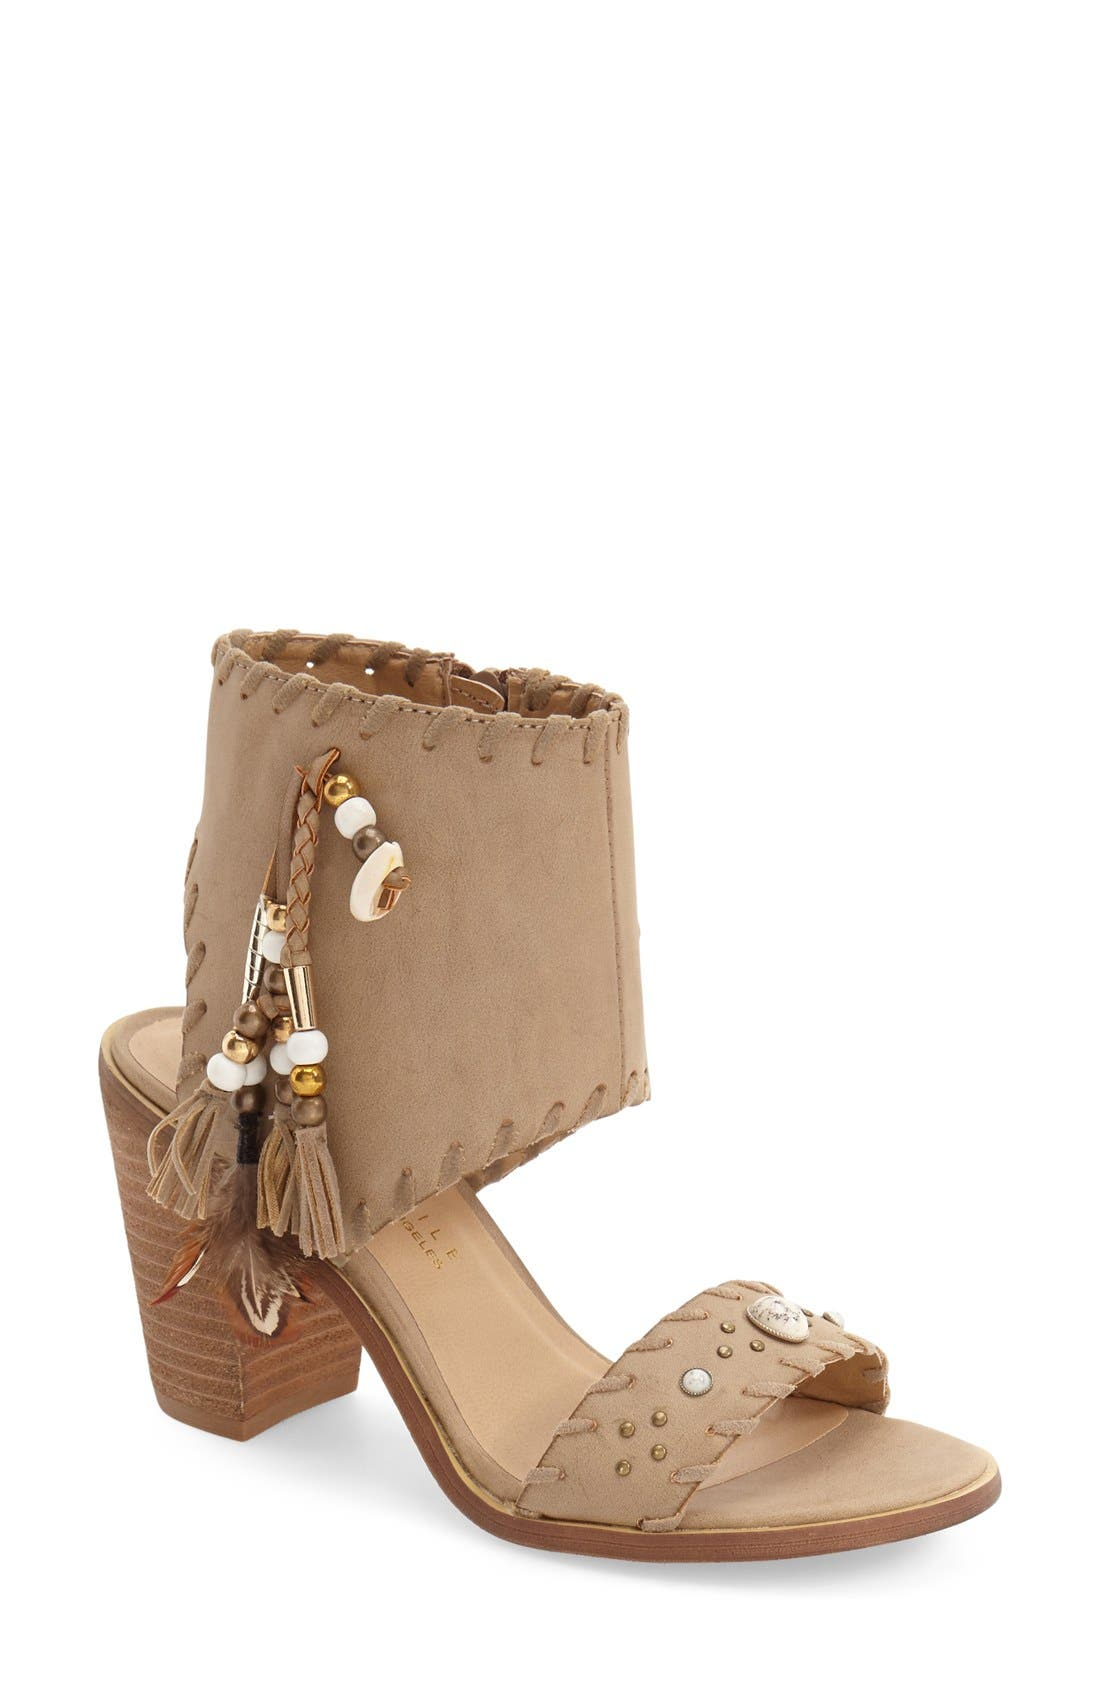 Alternate Image 1 Selected - Very Volatile 'Boho' Tassel Cuff Sandal (Women)